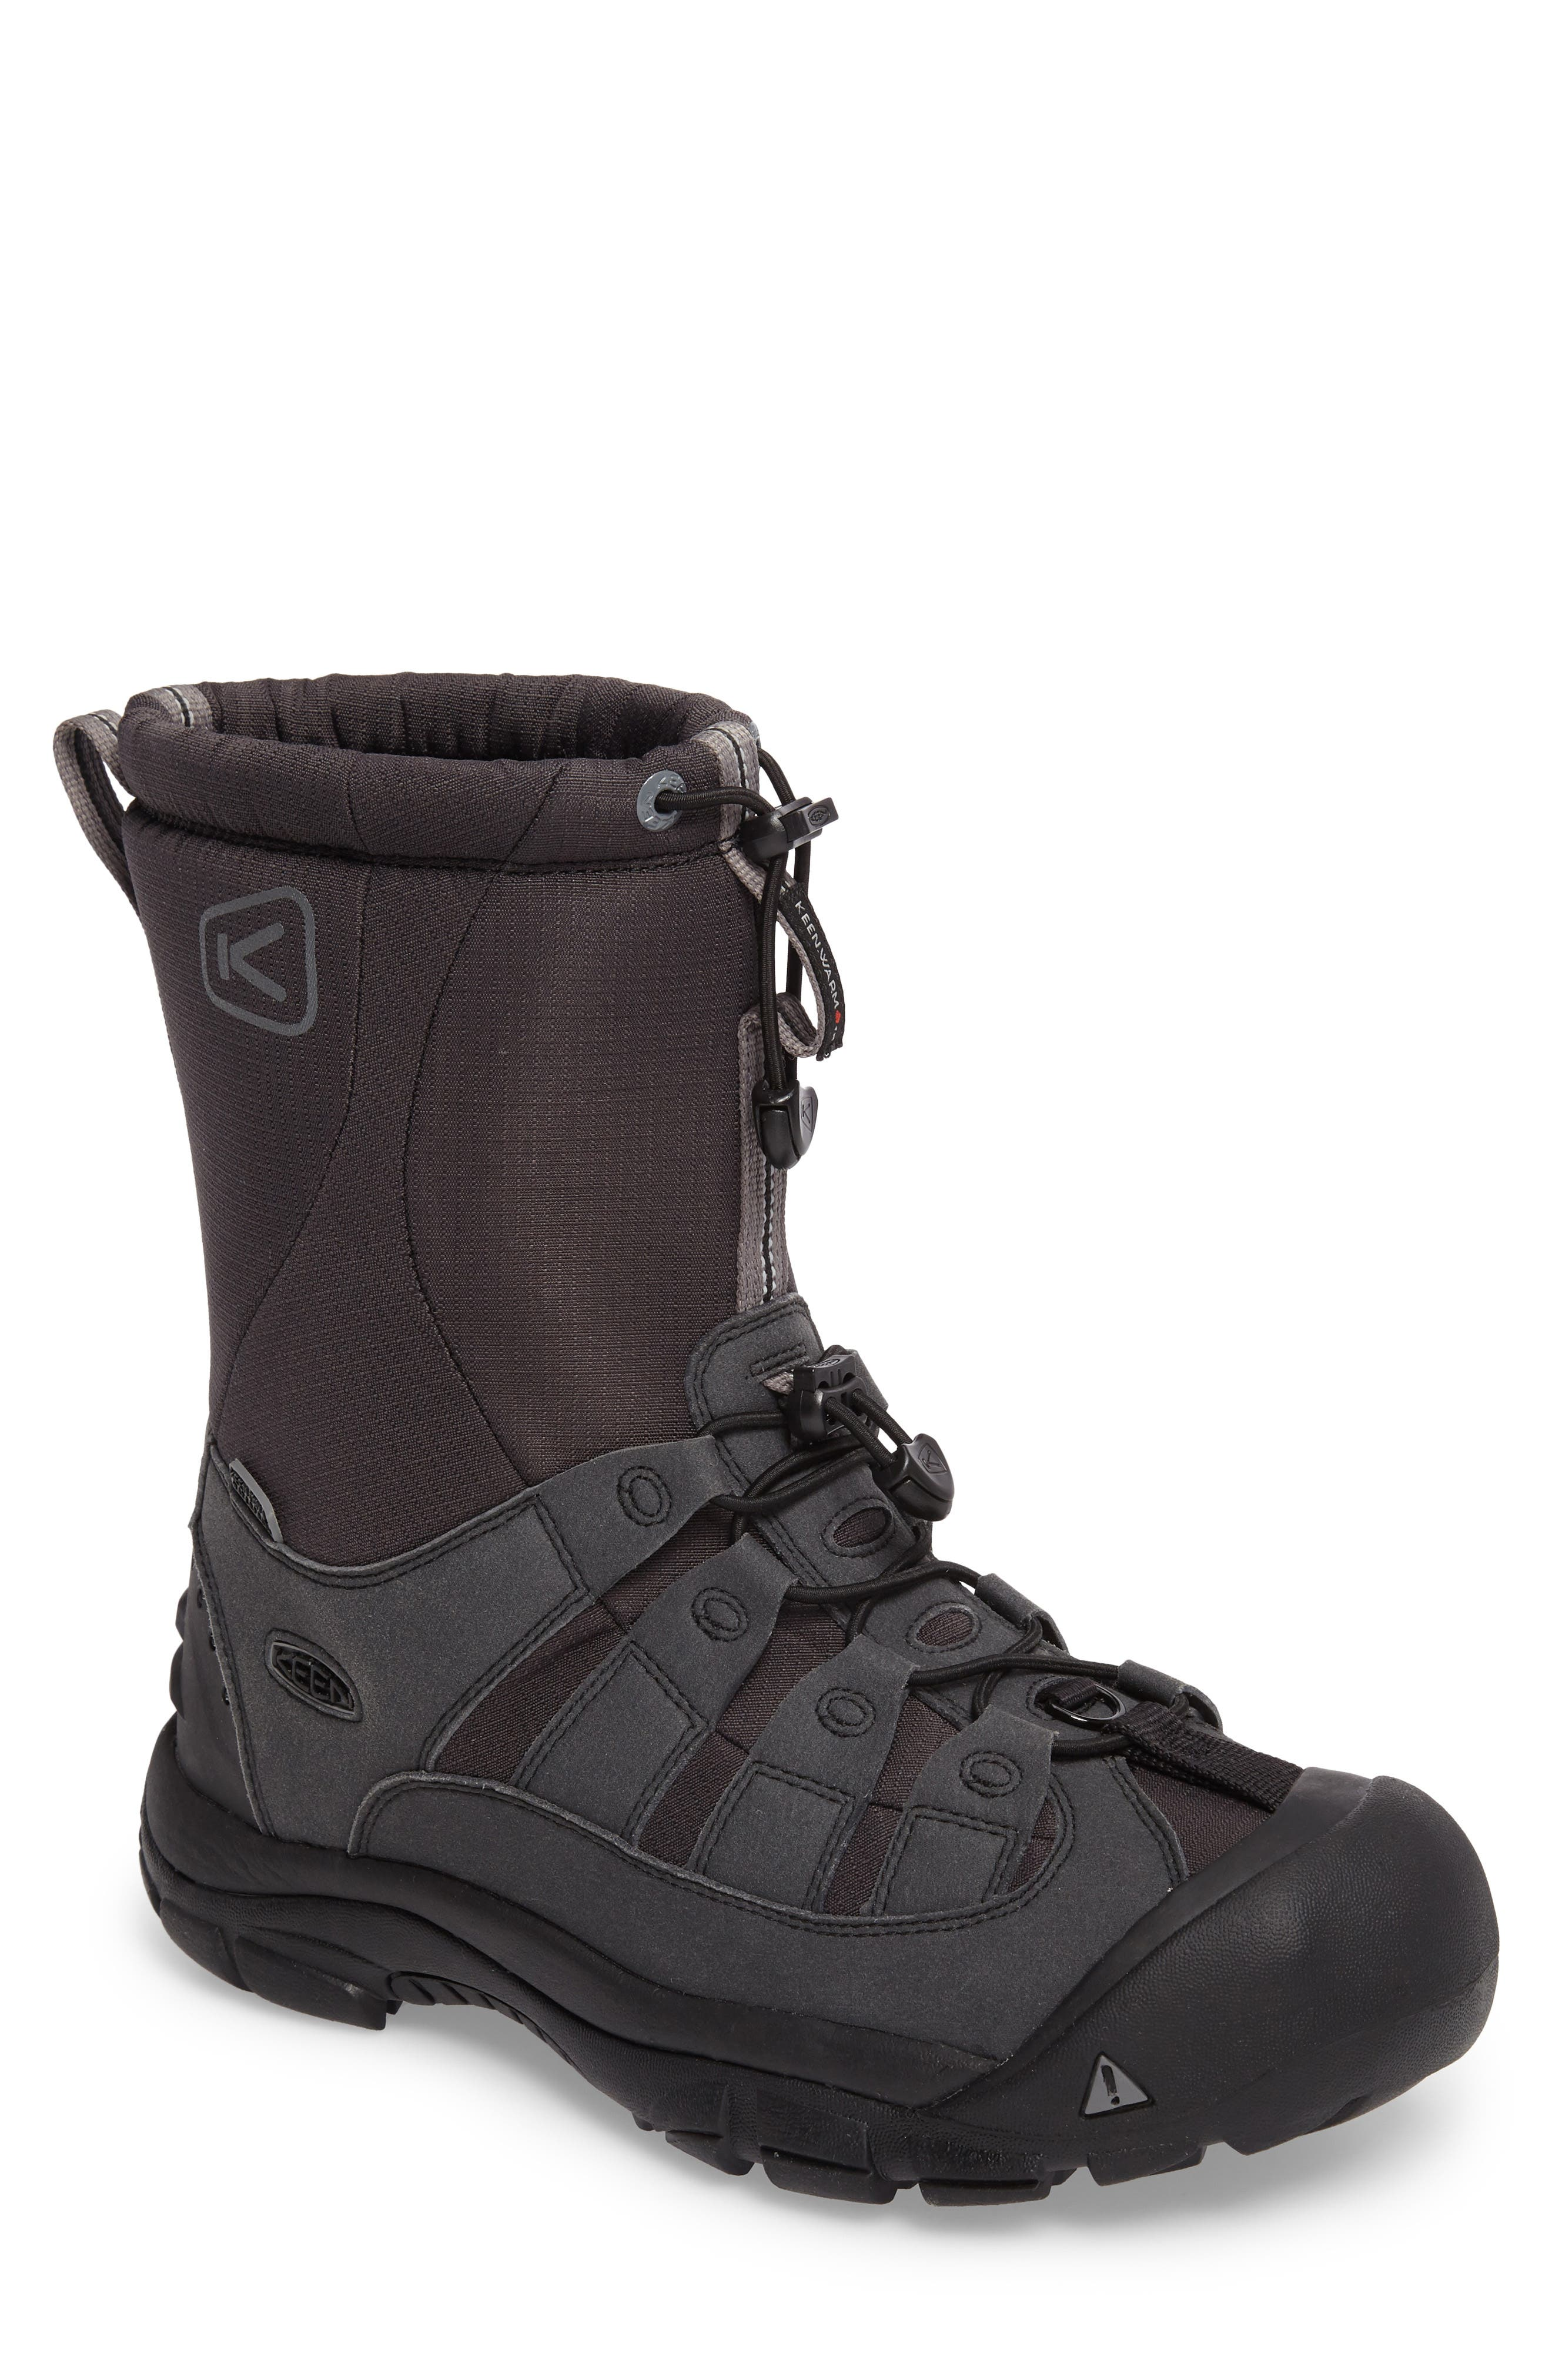 Winterport II Waterproof Insulated Snow Boot,                             Main thumbnail 1, color,                             Black/ Frost Gray